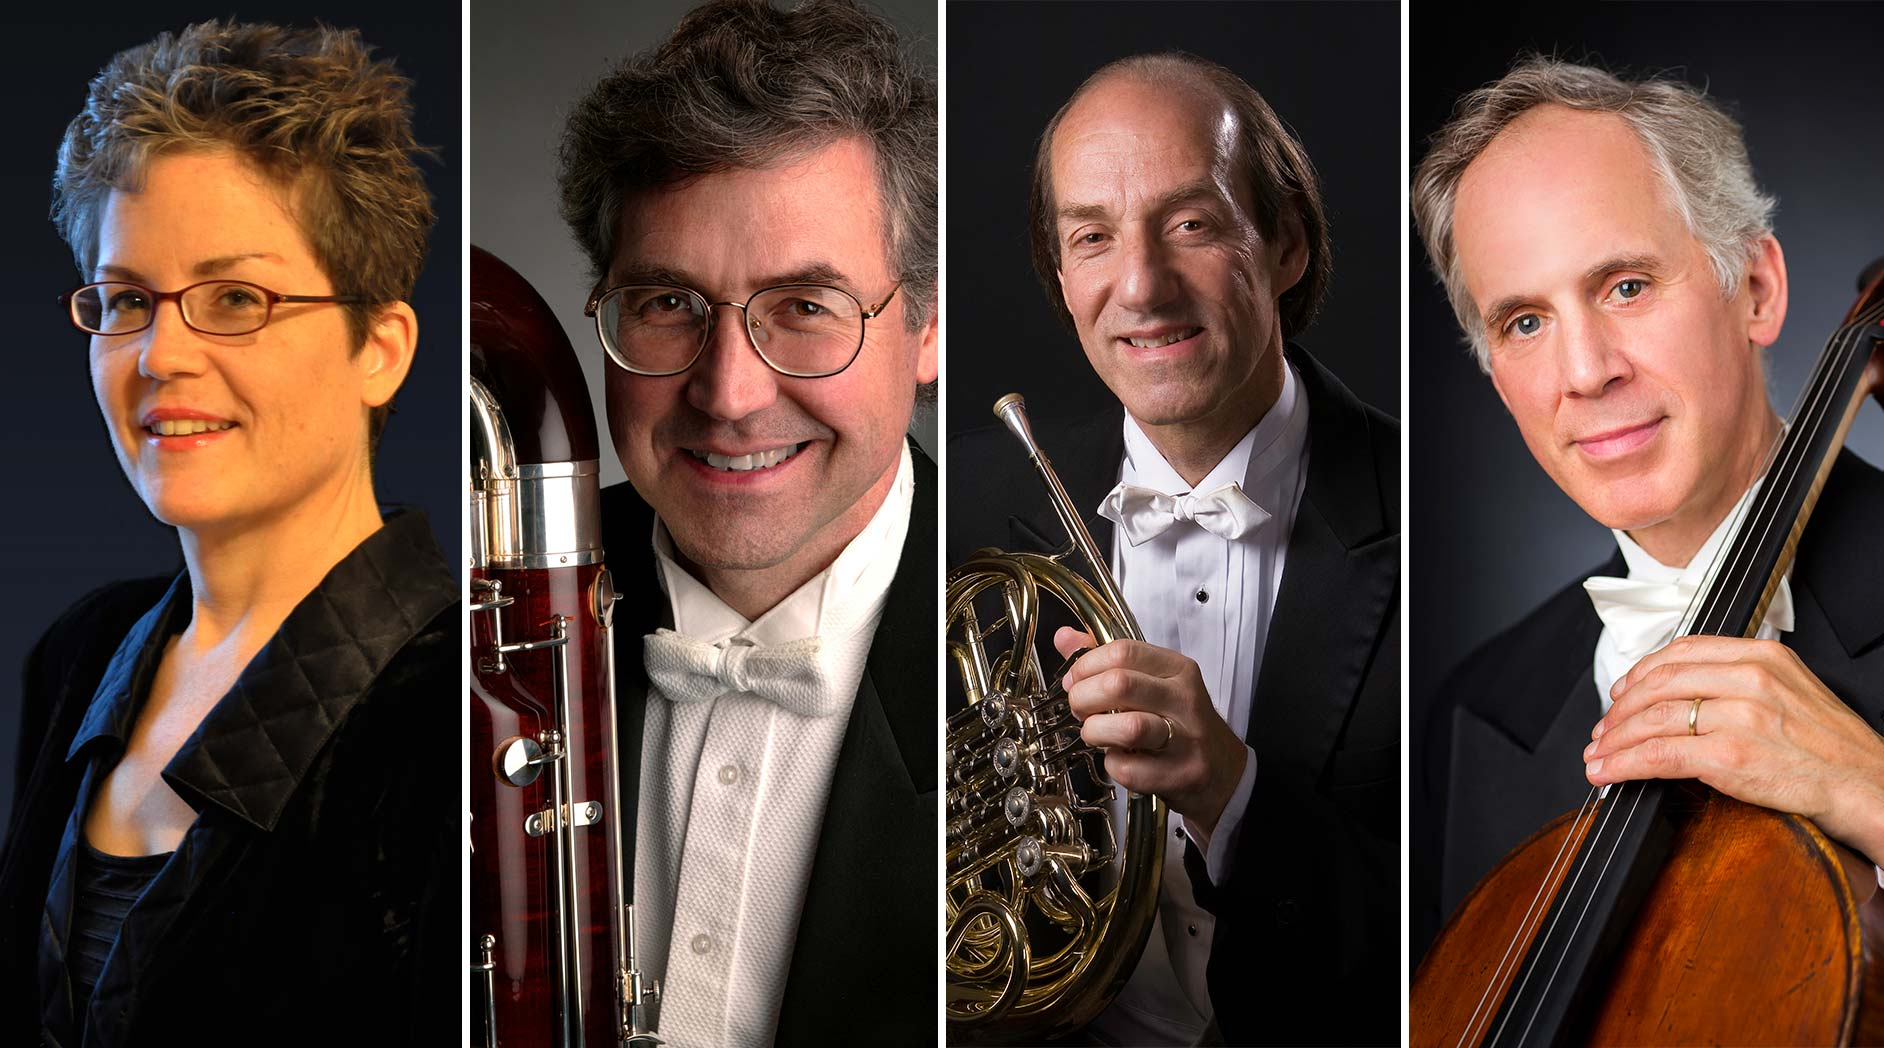 The four New York Philharmonic musicians retiring in 2020: Assistant Principal Librarian Sandra Pearson, bassoon / contrabassoon Arlen Fast, horn player Howard Wall, and cellist Eric Bartlett